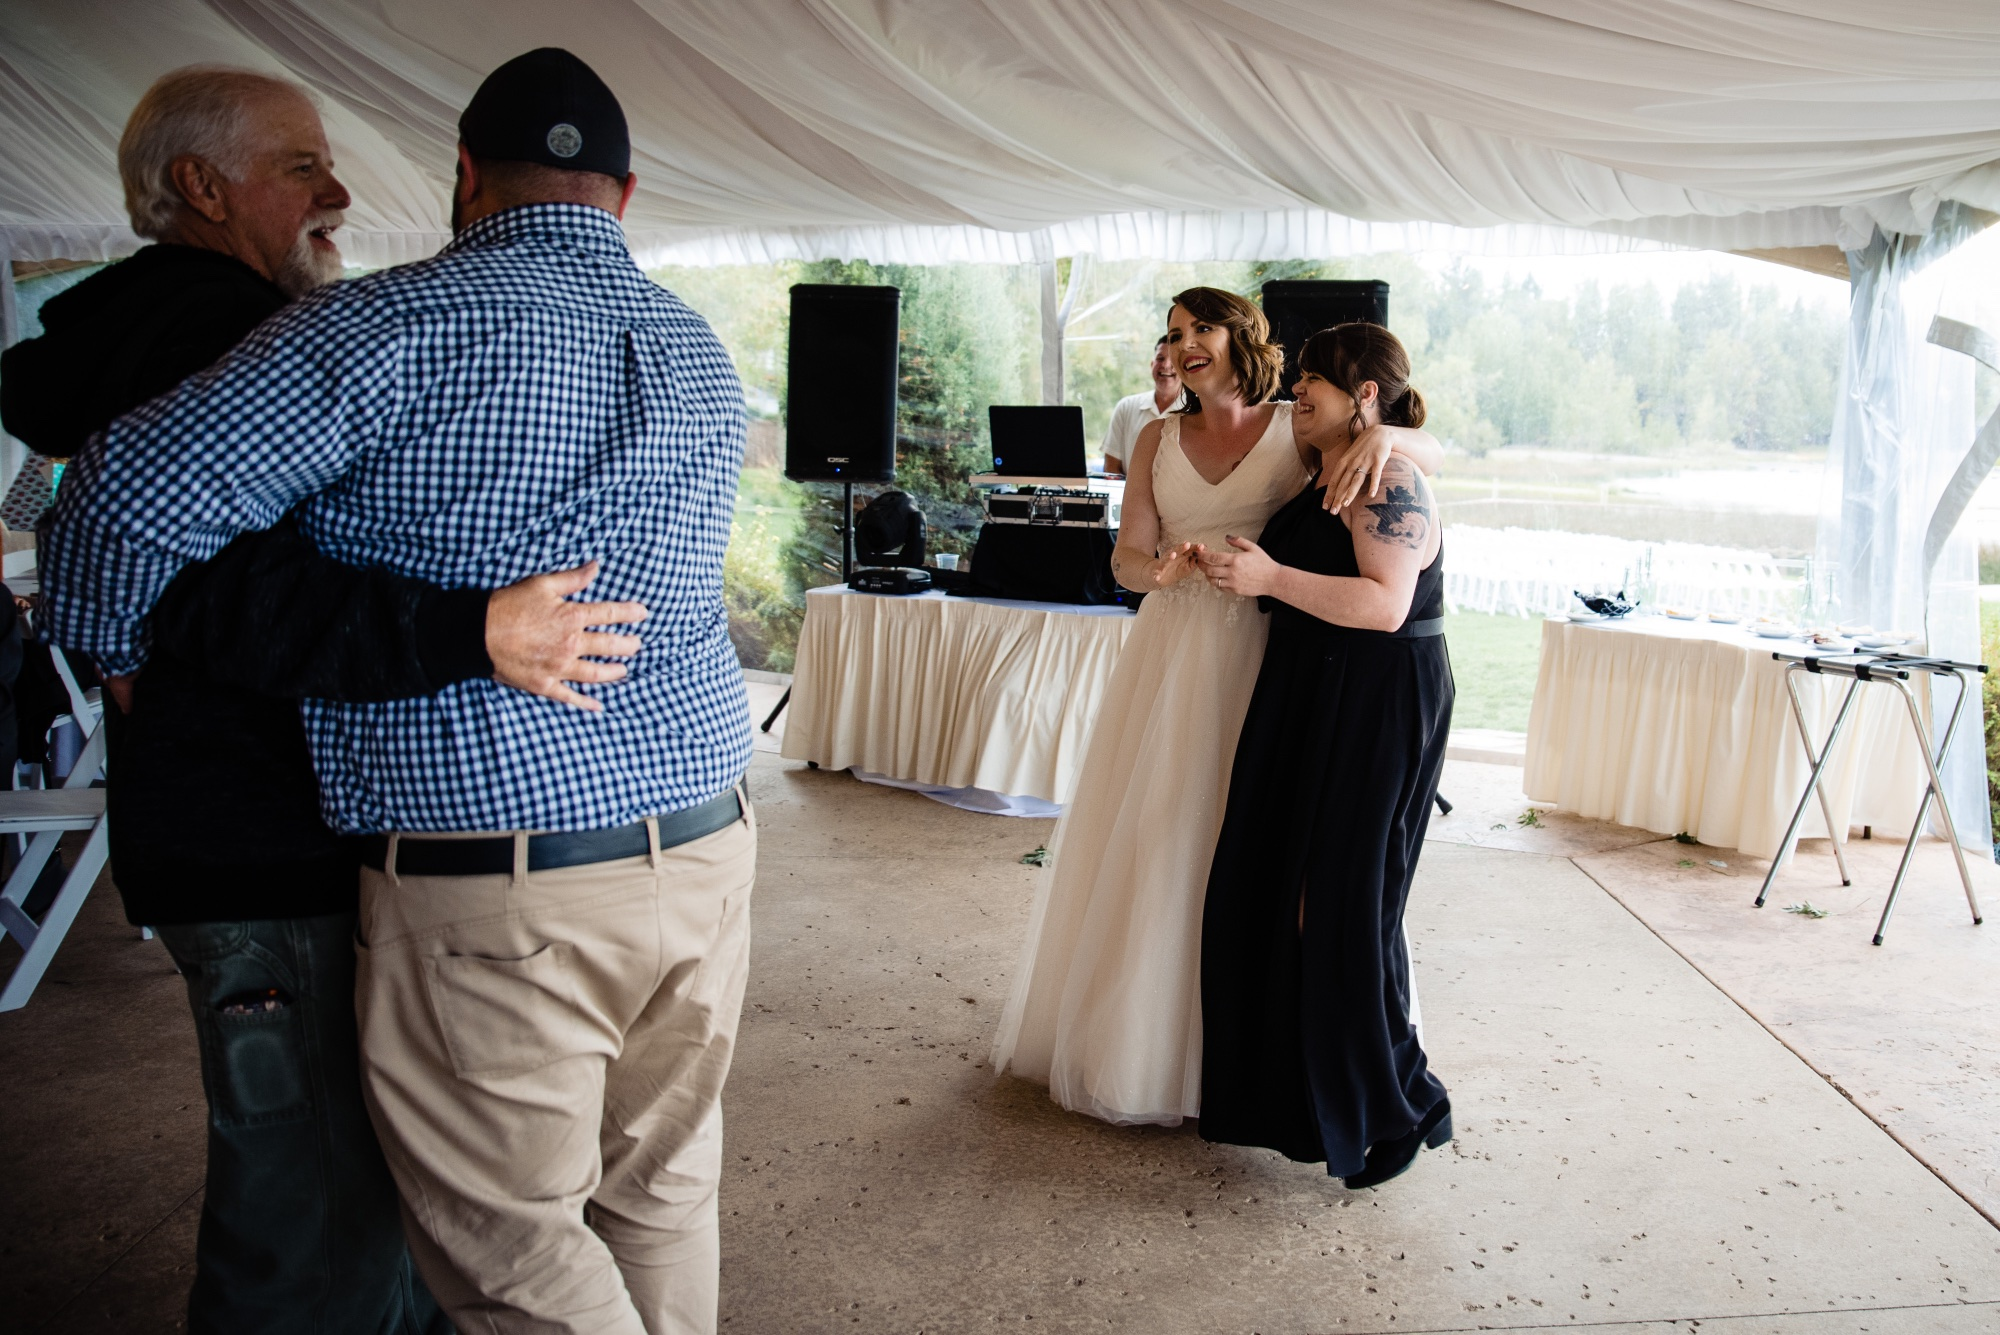 lindseyjanephoto_wedding0111.jpg